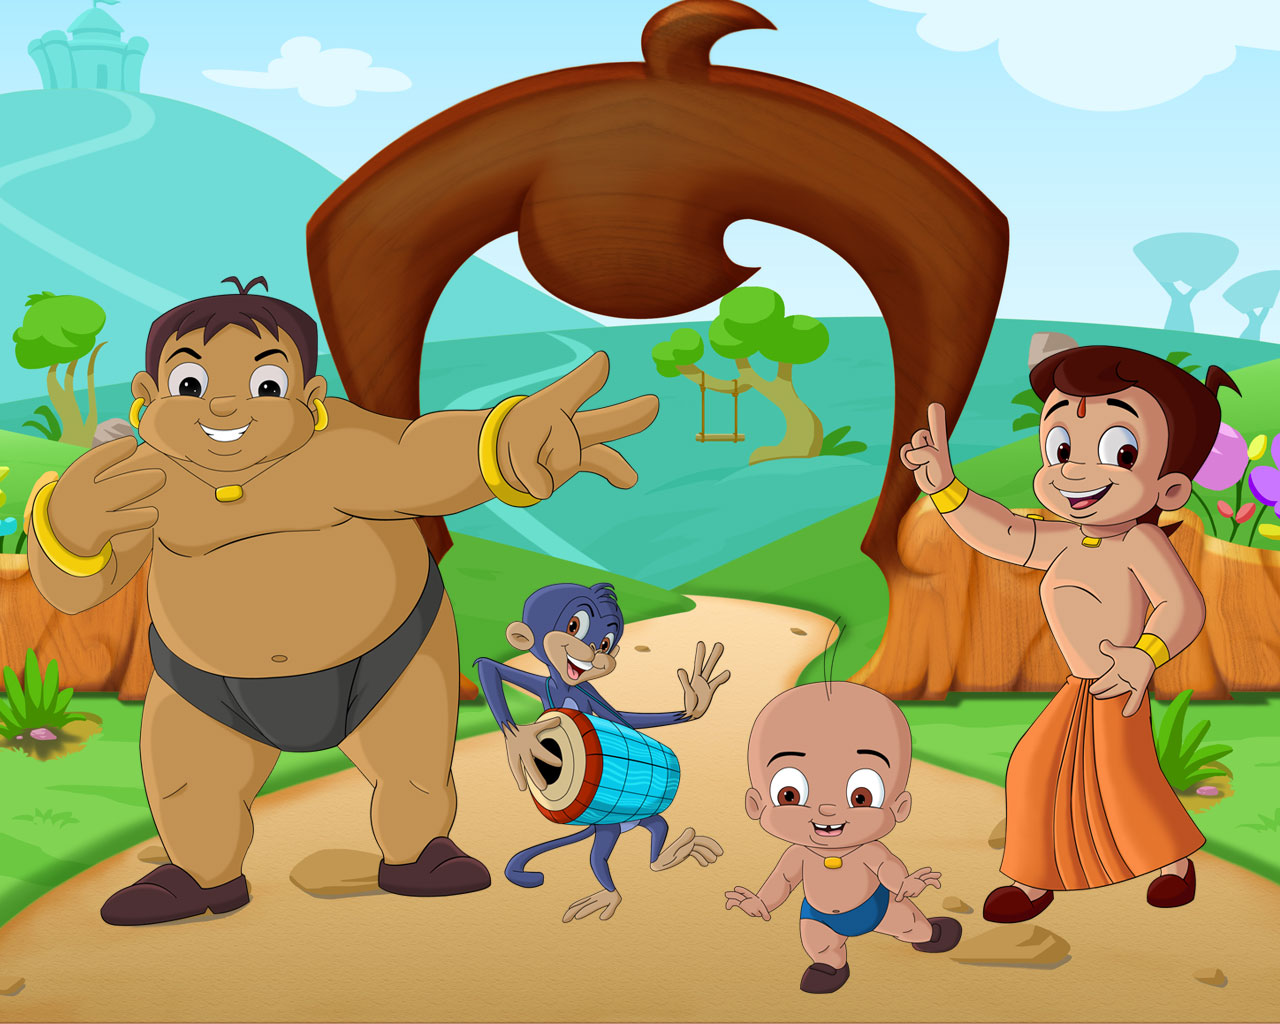 Amazing Wallpapers Cute Chota Bheem Cartoon Pictures Wallpaper Hd Images And Photos